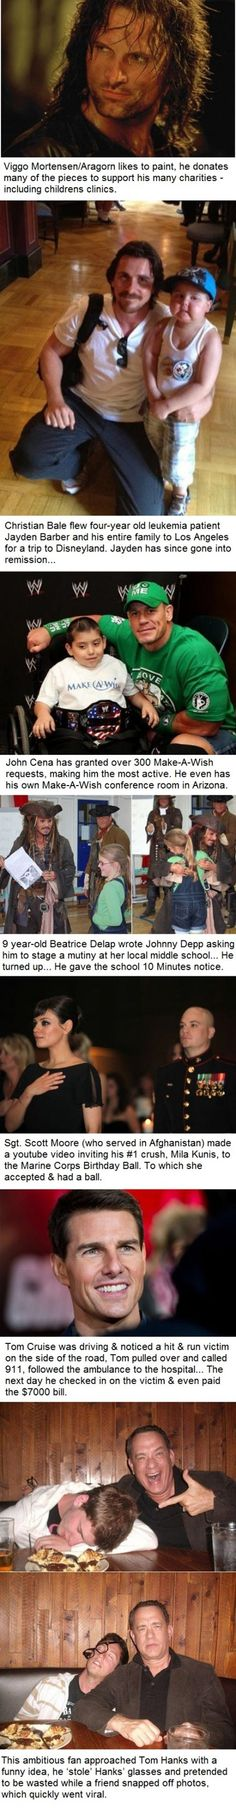 This is very sweet :) johnny depps is my fave